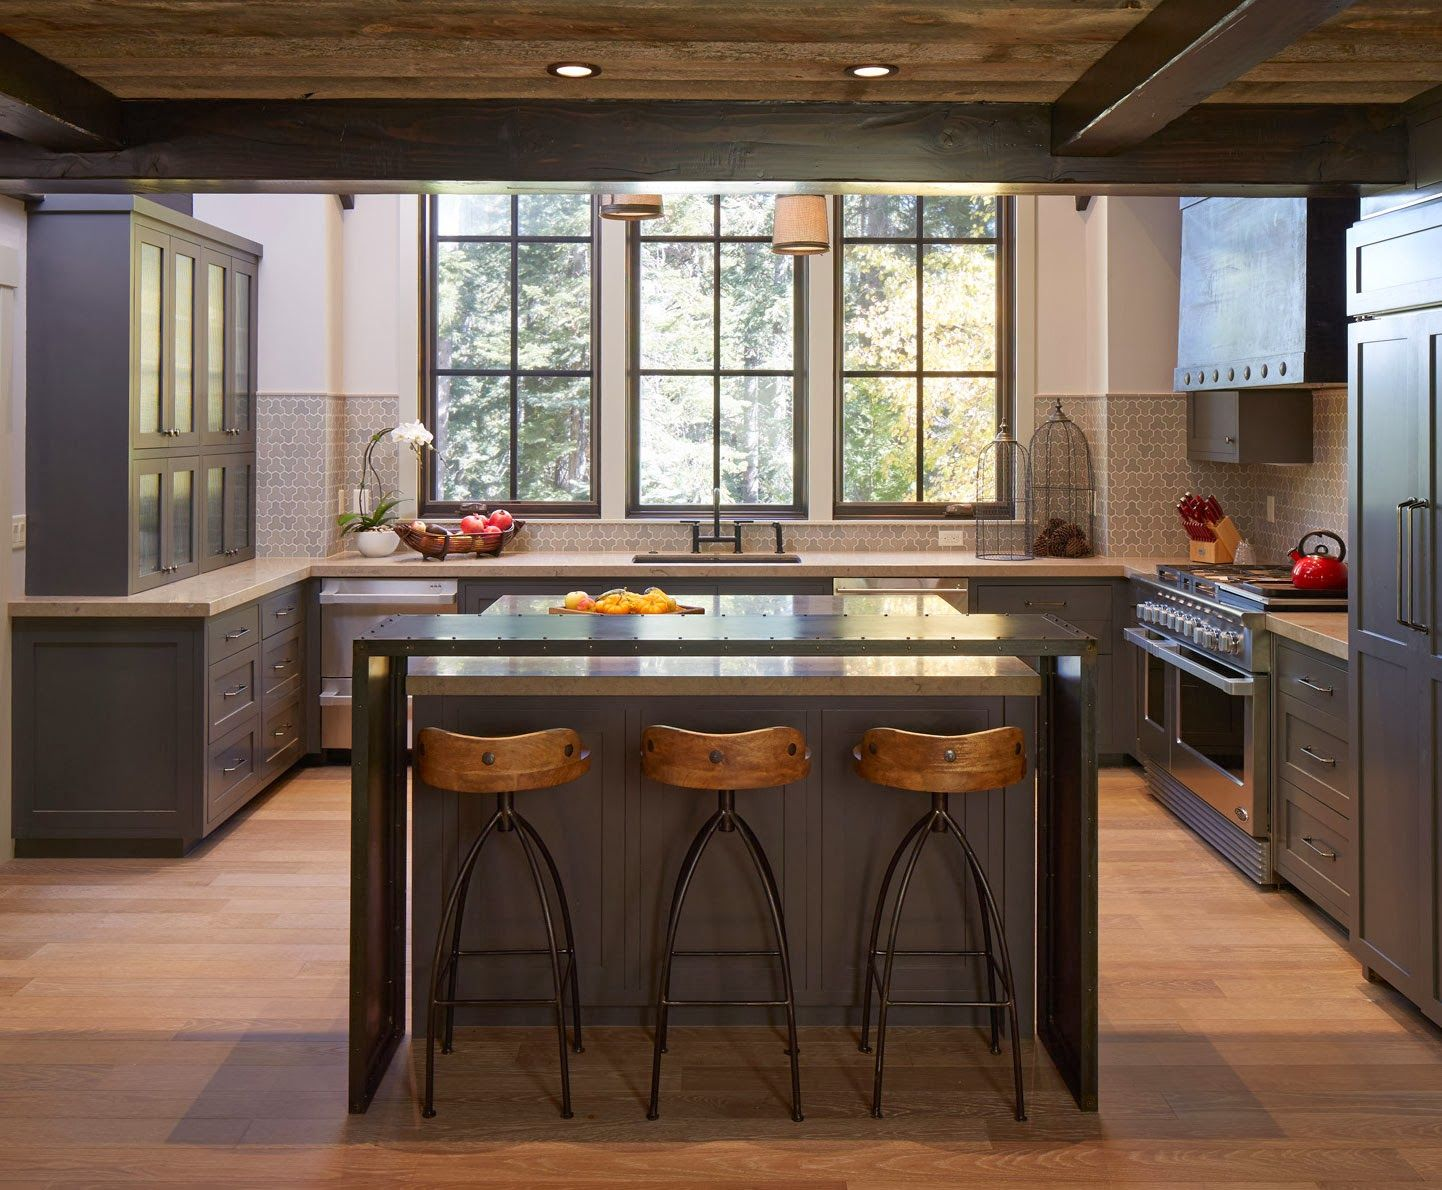 Kitchen - grey and wood fnishes. Lake Tahoe home.